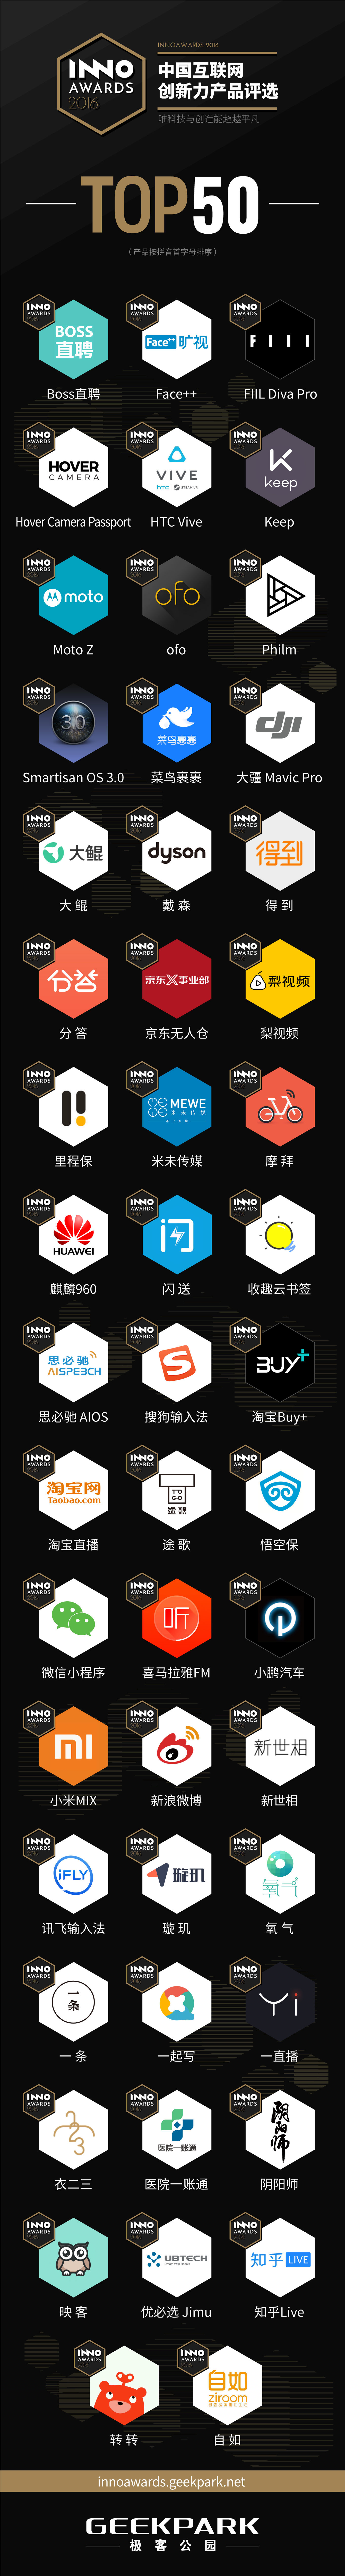 innowards2016TOP50大图.jpg